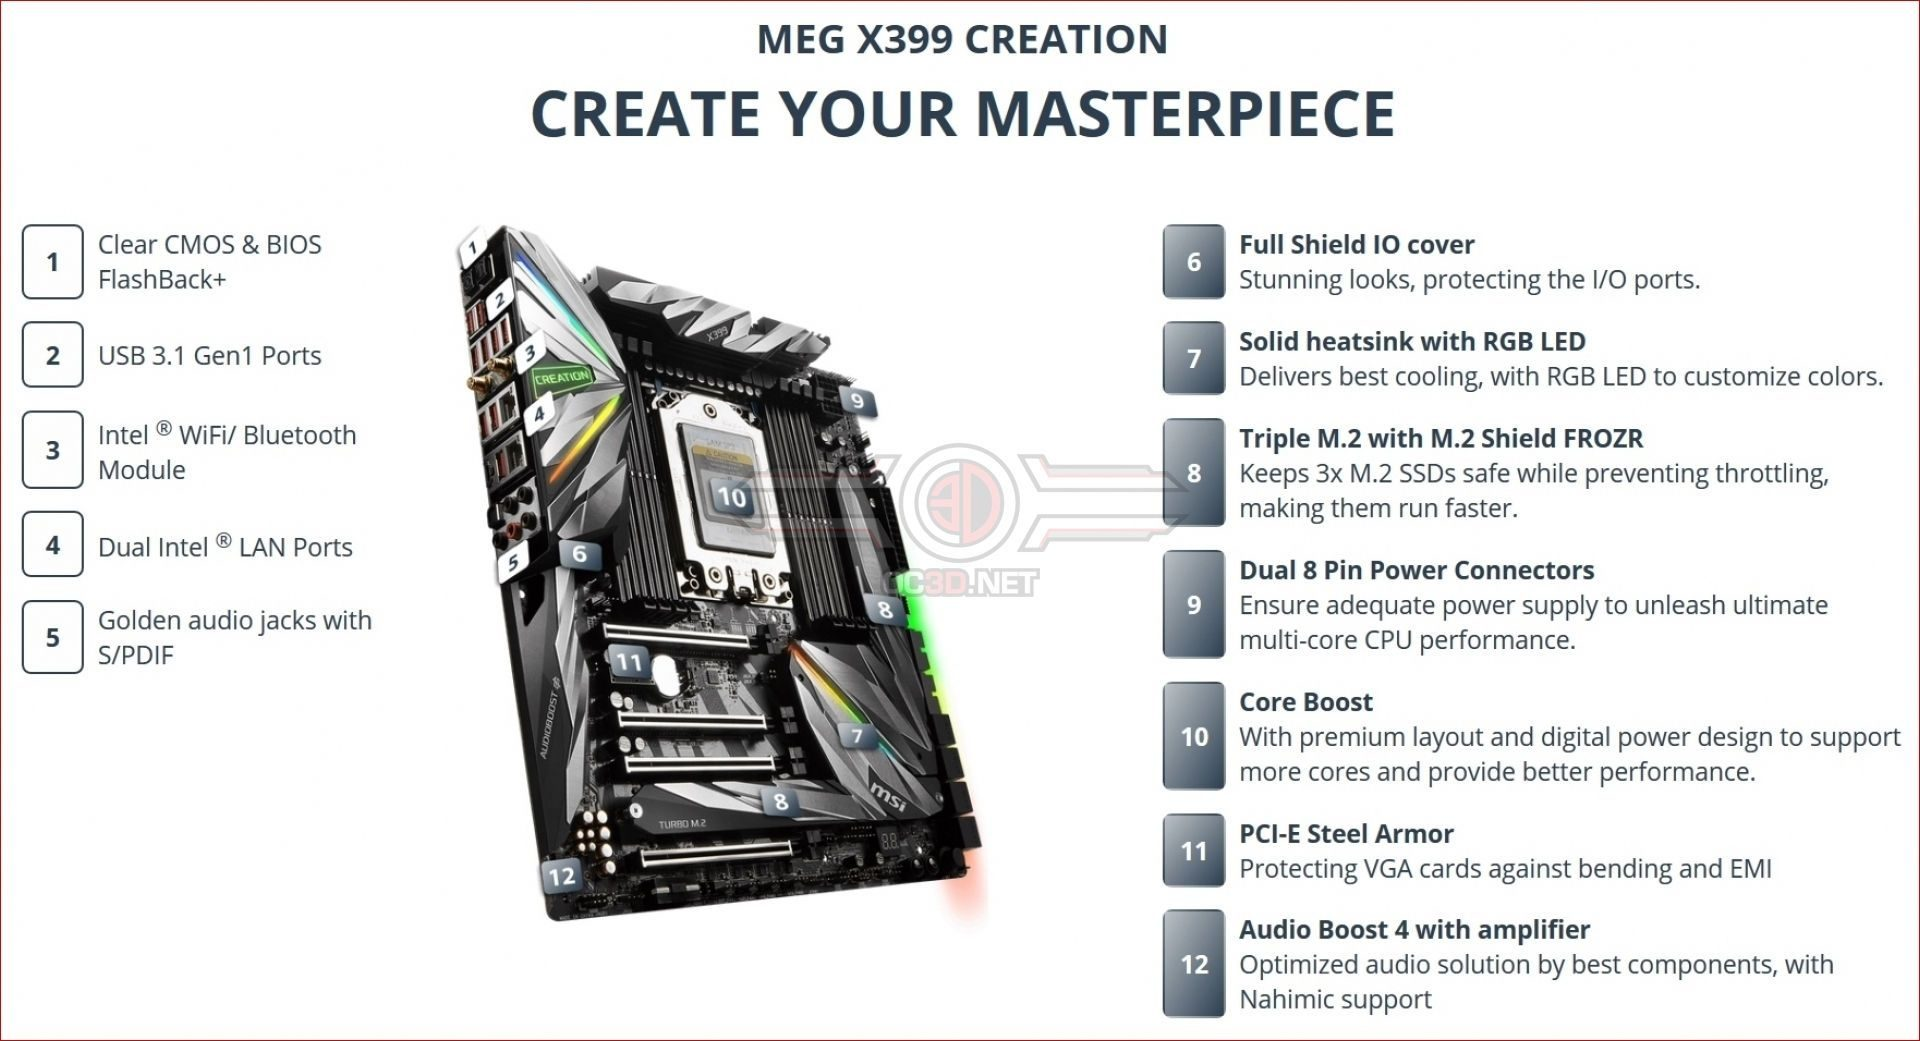 ASUS, Gigabyte and MSI are preparing their X399 boards for the new